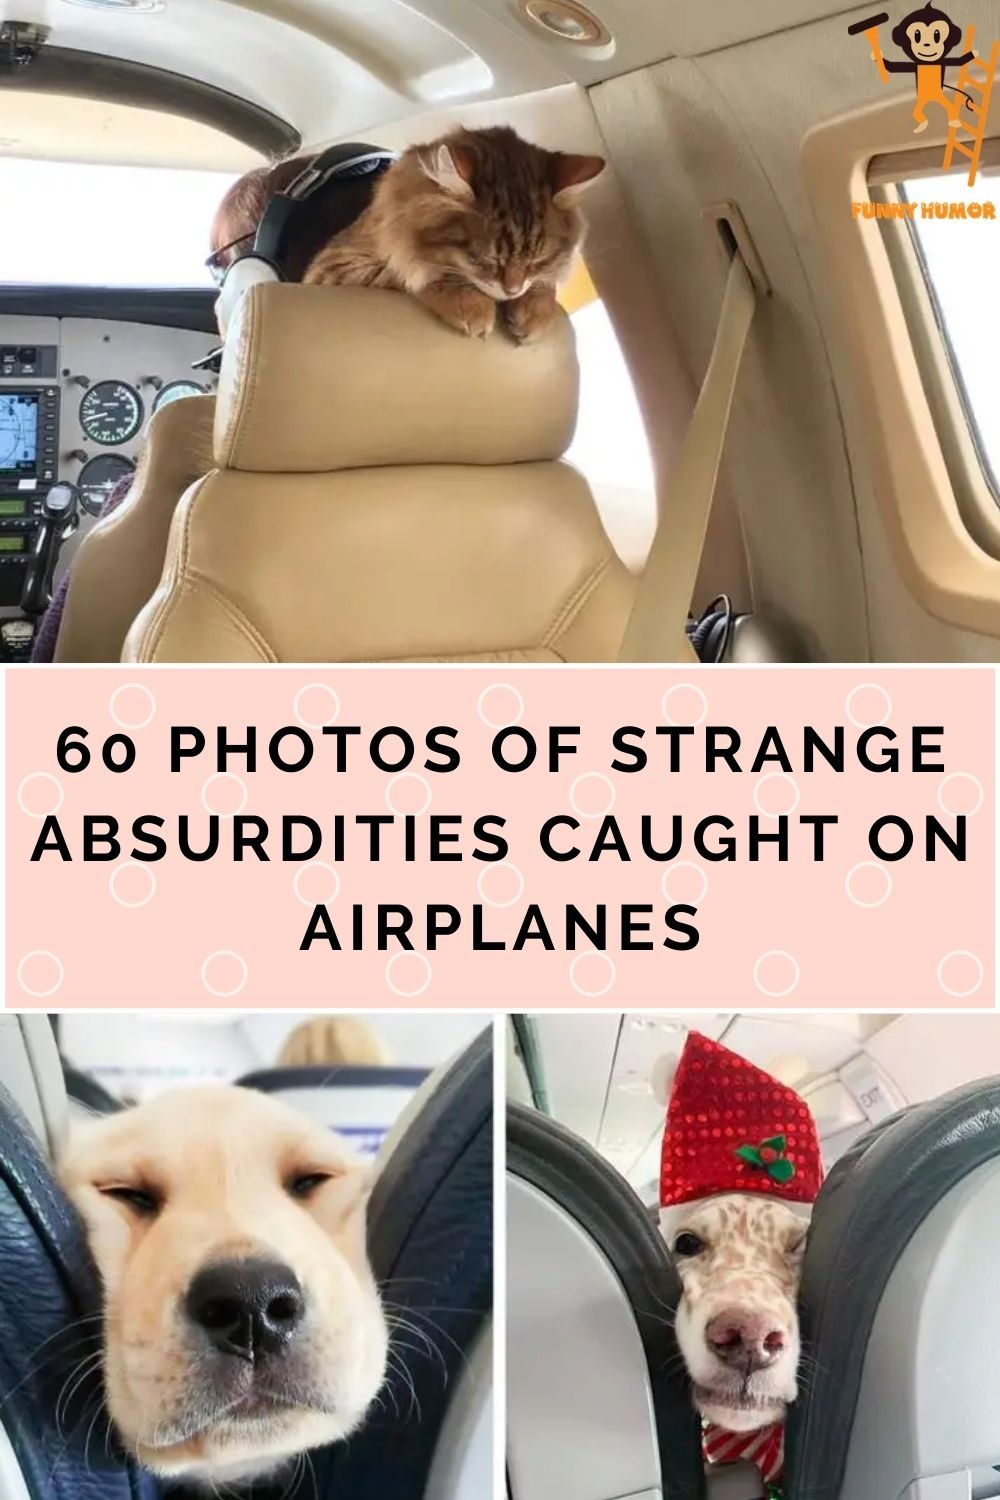 Airplane Halloween Decorations 2020 60 of the strangest absurdities caught on an airplane in 2020